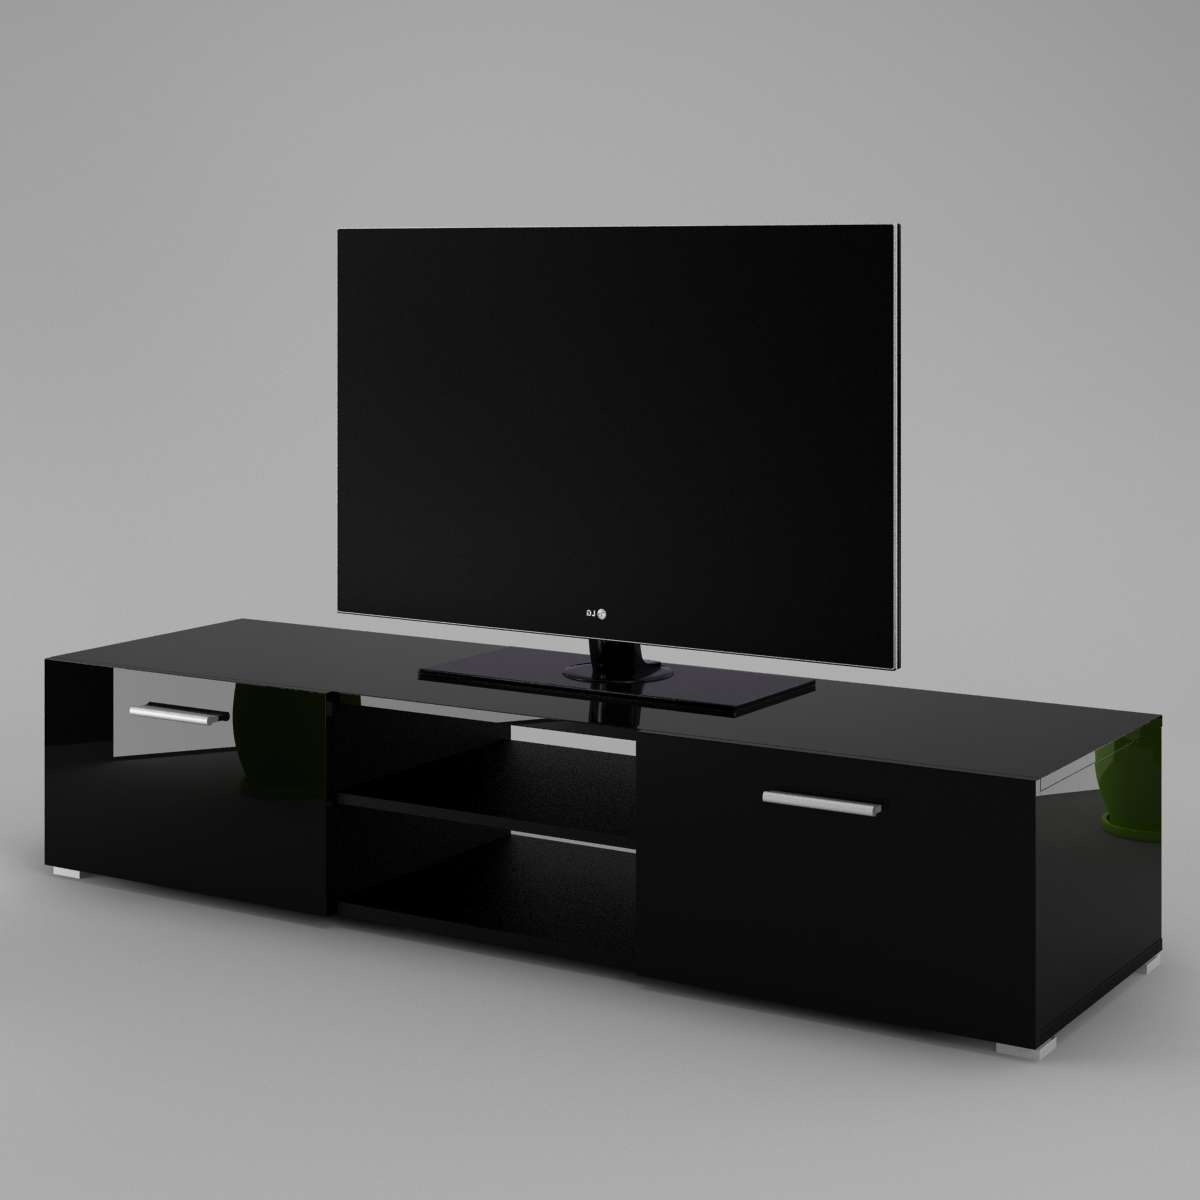 Tv Cabinet Luna – Labi Furniturelabi Furniture Intended For Tv Cabinets Black High Gloss (View 2 of 20)